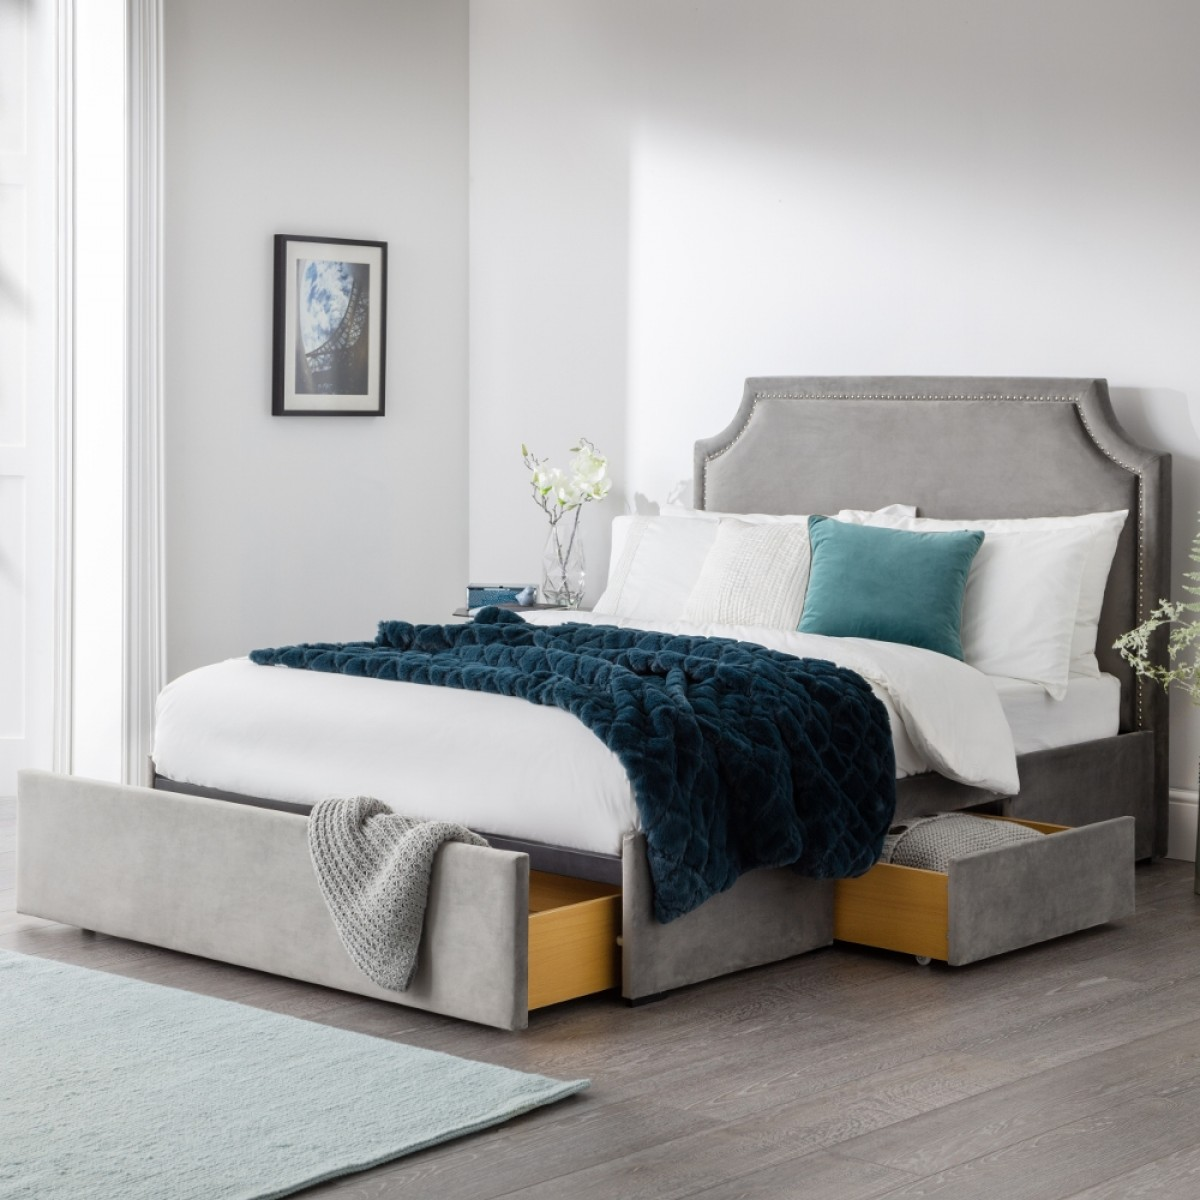 Mayfair Grey Velvet Fabric 3 Drawer Storage Bed